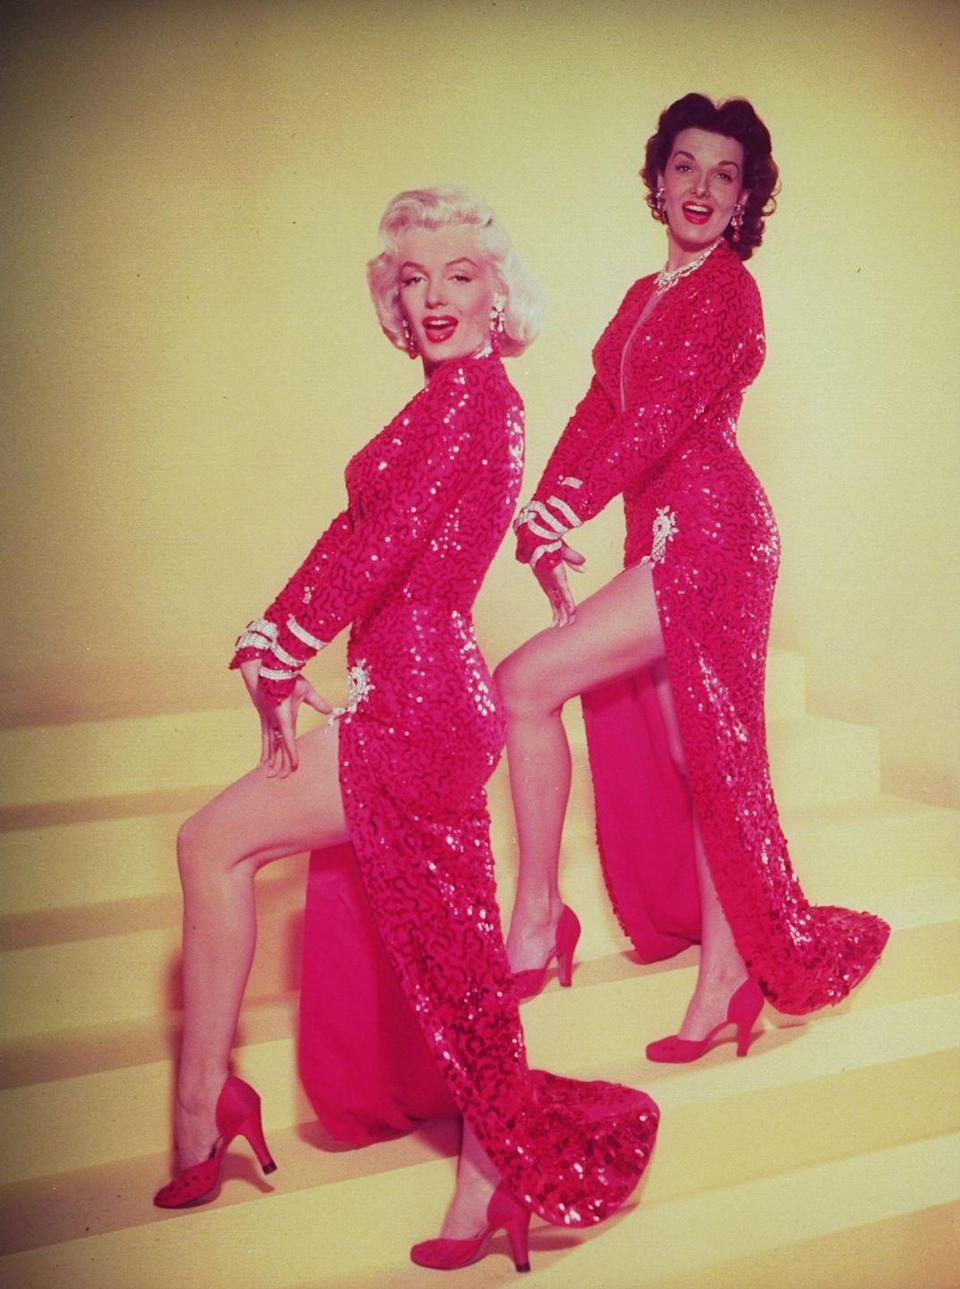 <p>Jane Russell and Marilyn Monroe wore a monochromatic look in <em>Gentlemen Prefer Blondes, </em>right down to their stunning red satin pumps.</p>